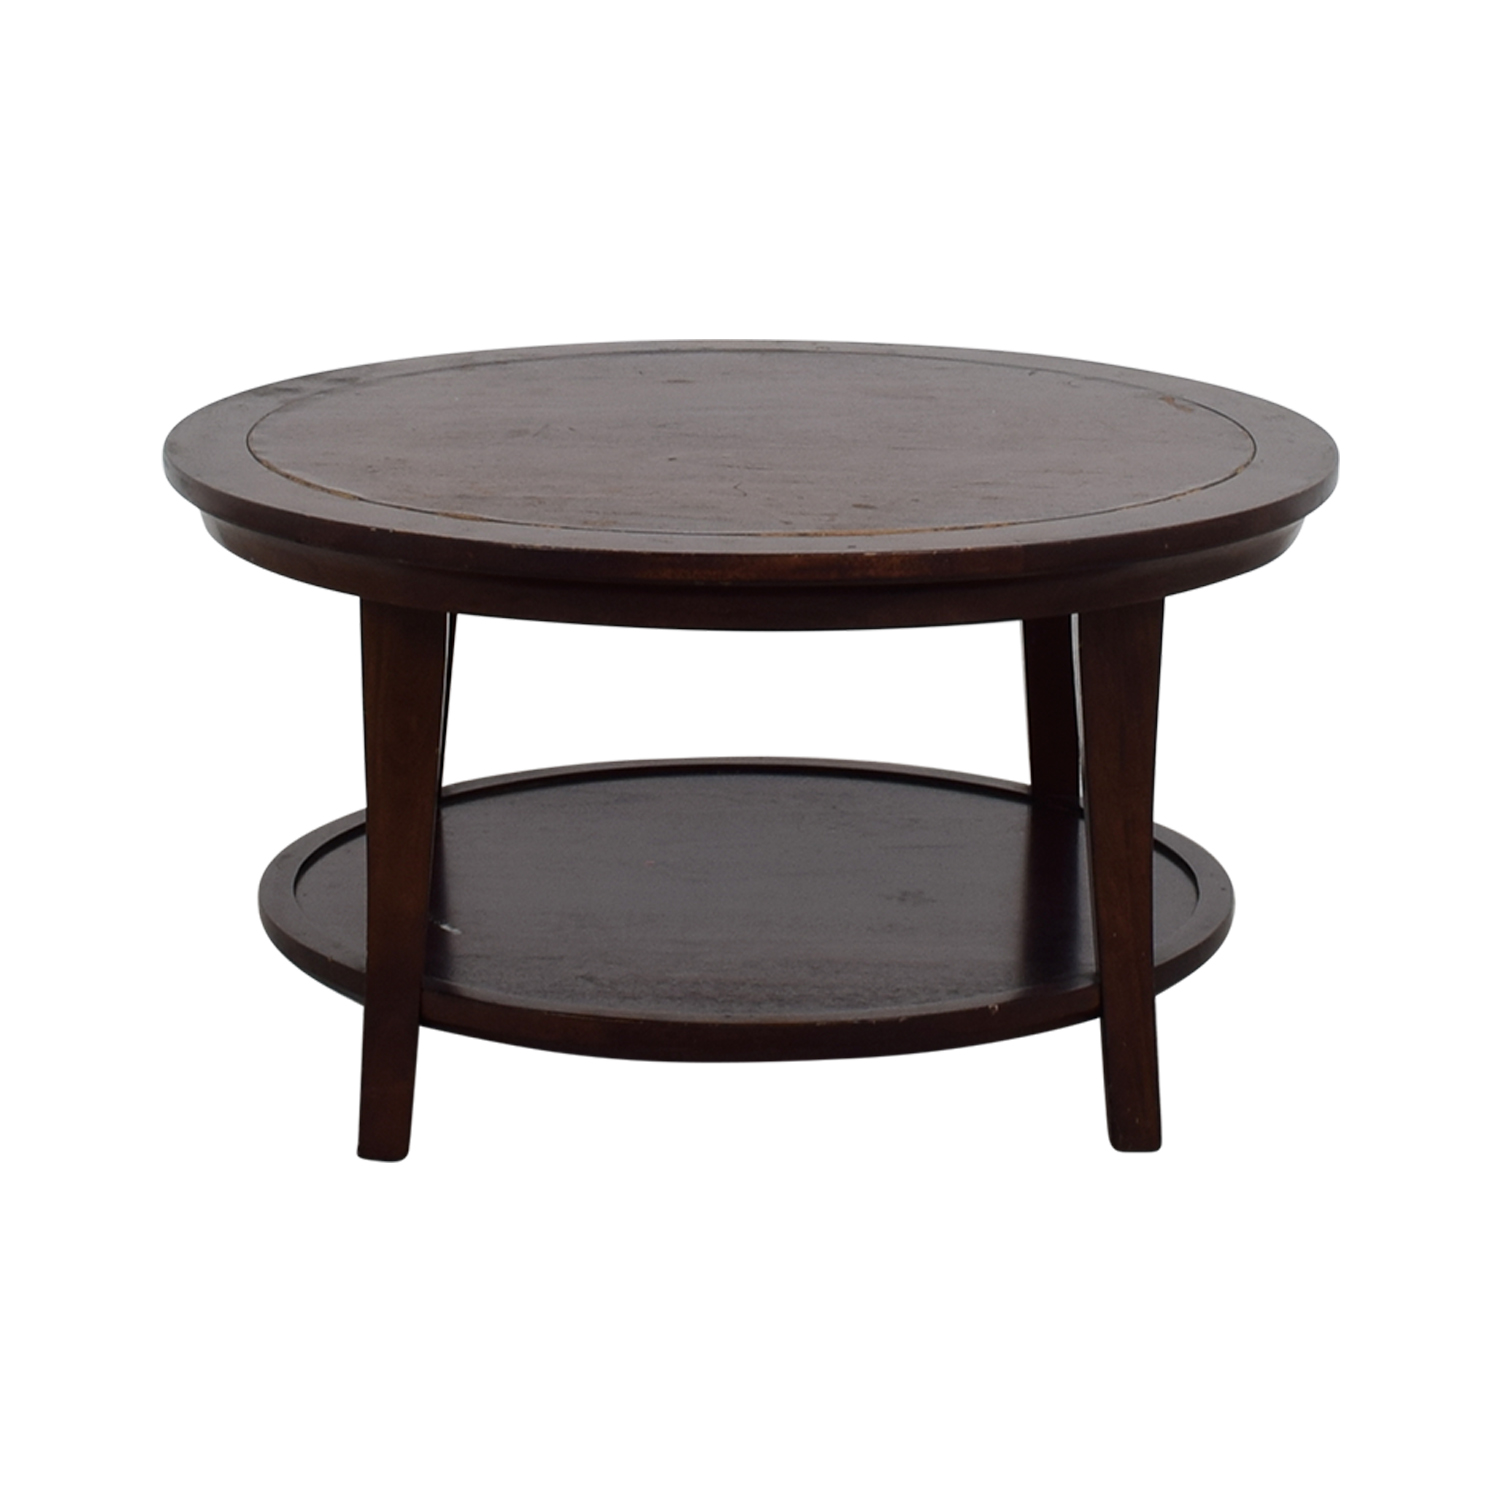 shop Wooden Round Coffee Table online